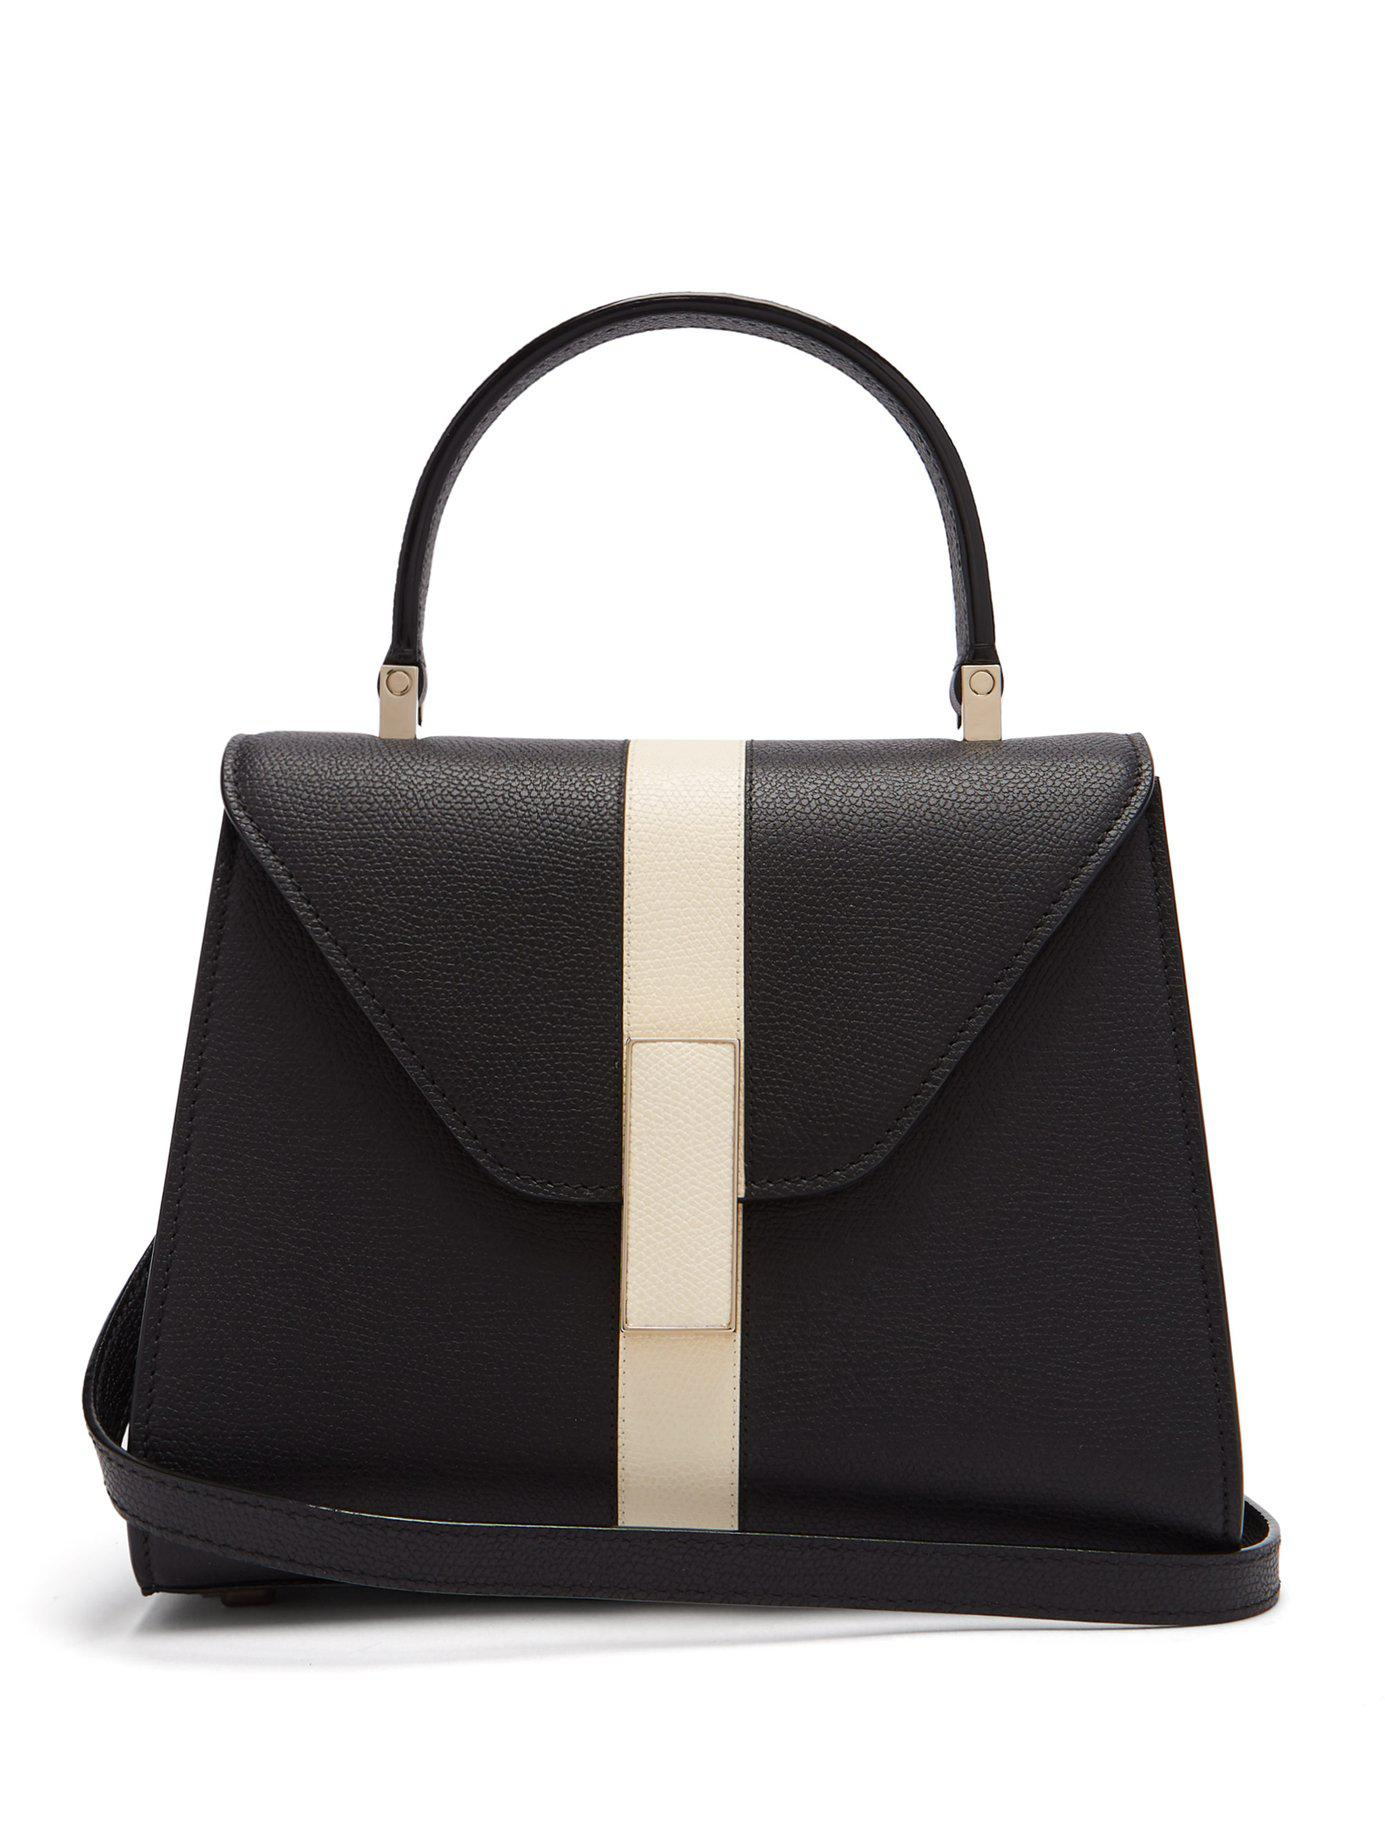 Lyst - Valextra Iside Striped Grained Leather Handbag in Black 3ec5f635ee9ab